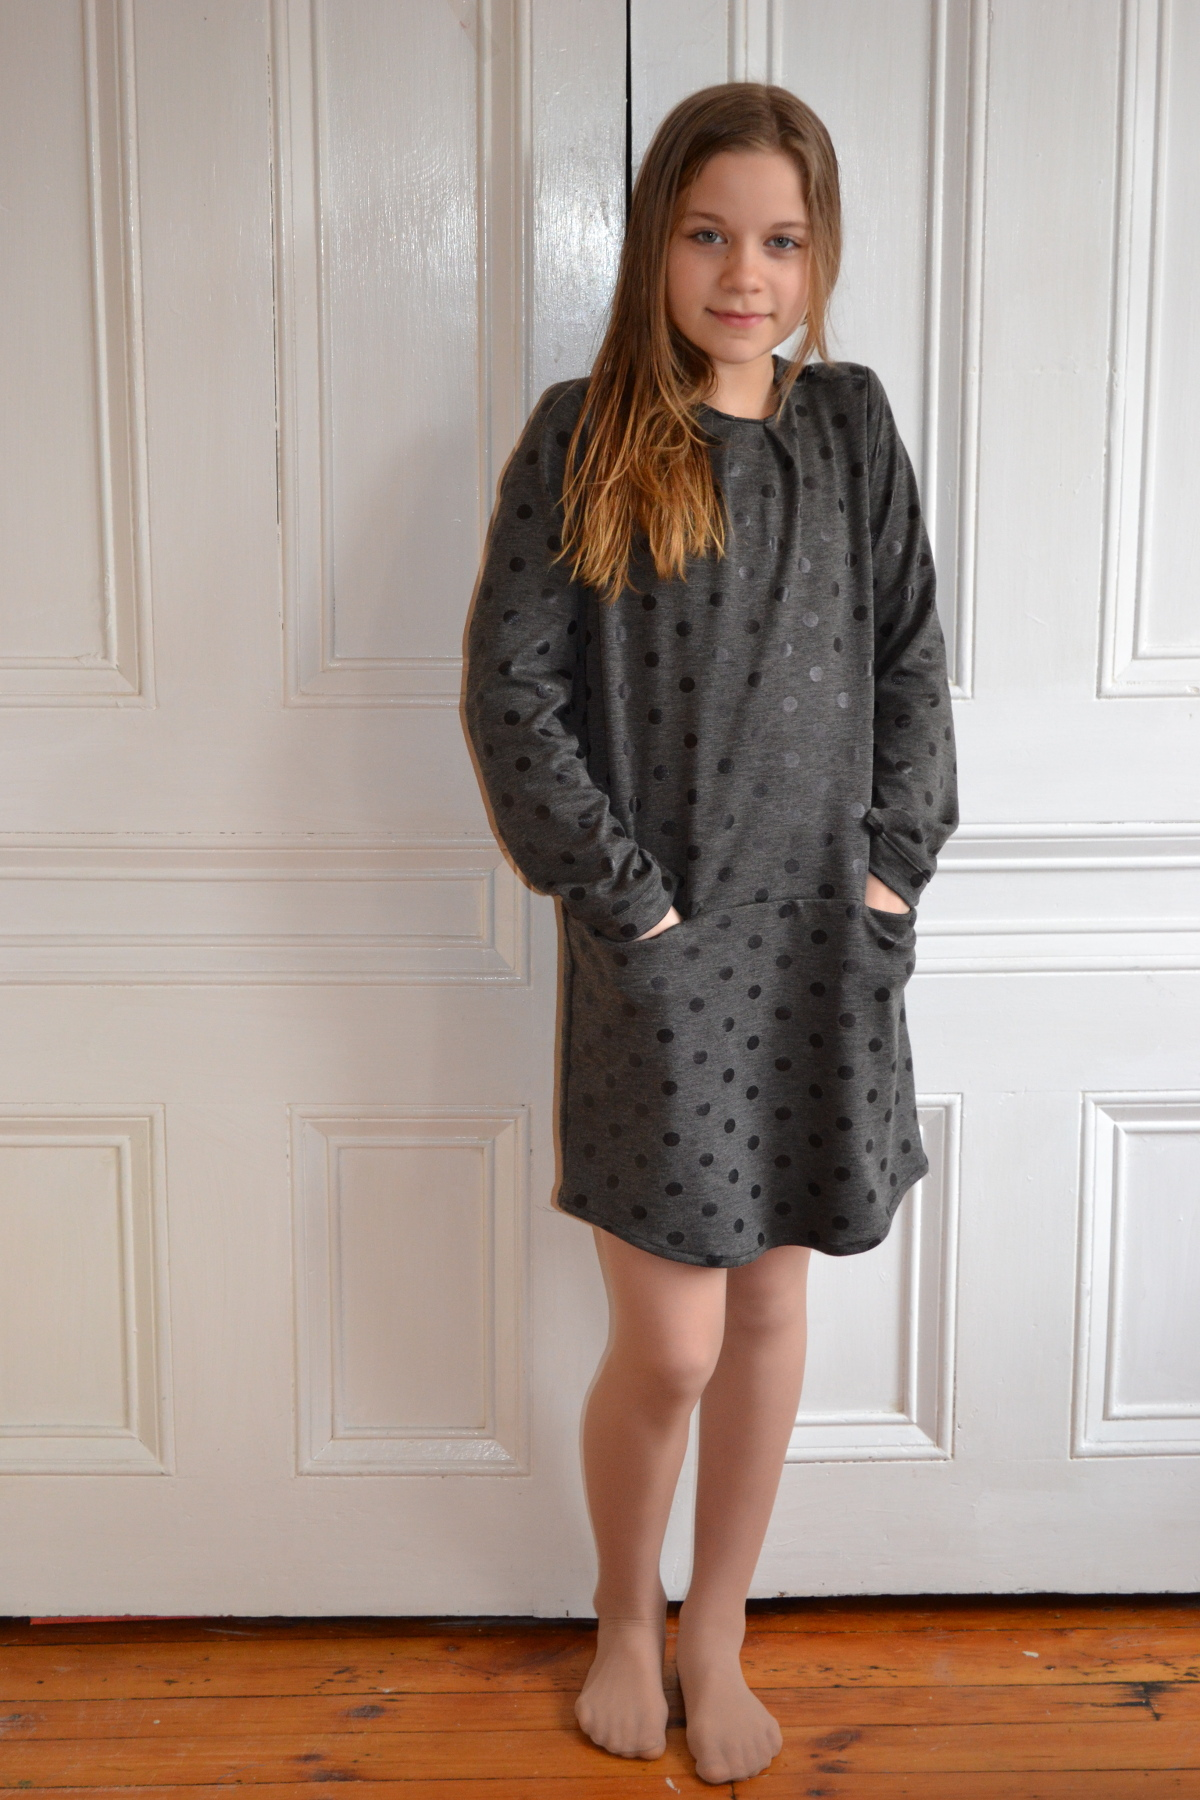 tweens adolescence and mini black dresses Teen wardrobes : what does the wardrobe appear in tweens the dresses would include staples such as the little black dress, laces, peplums, summer dresses and.